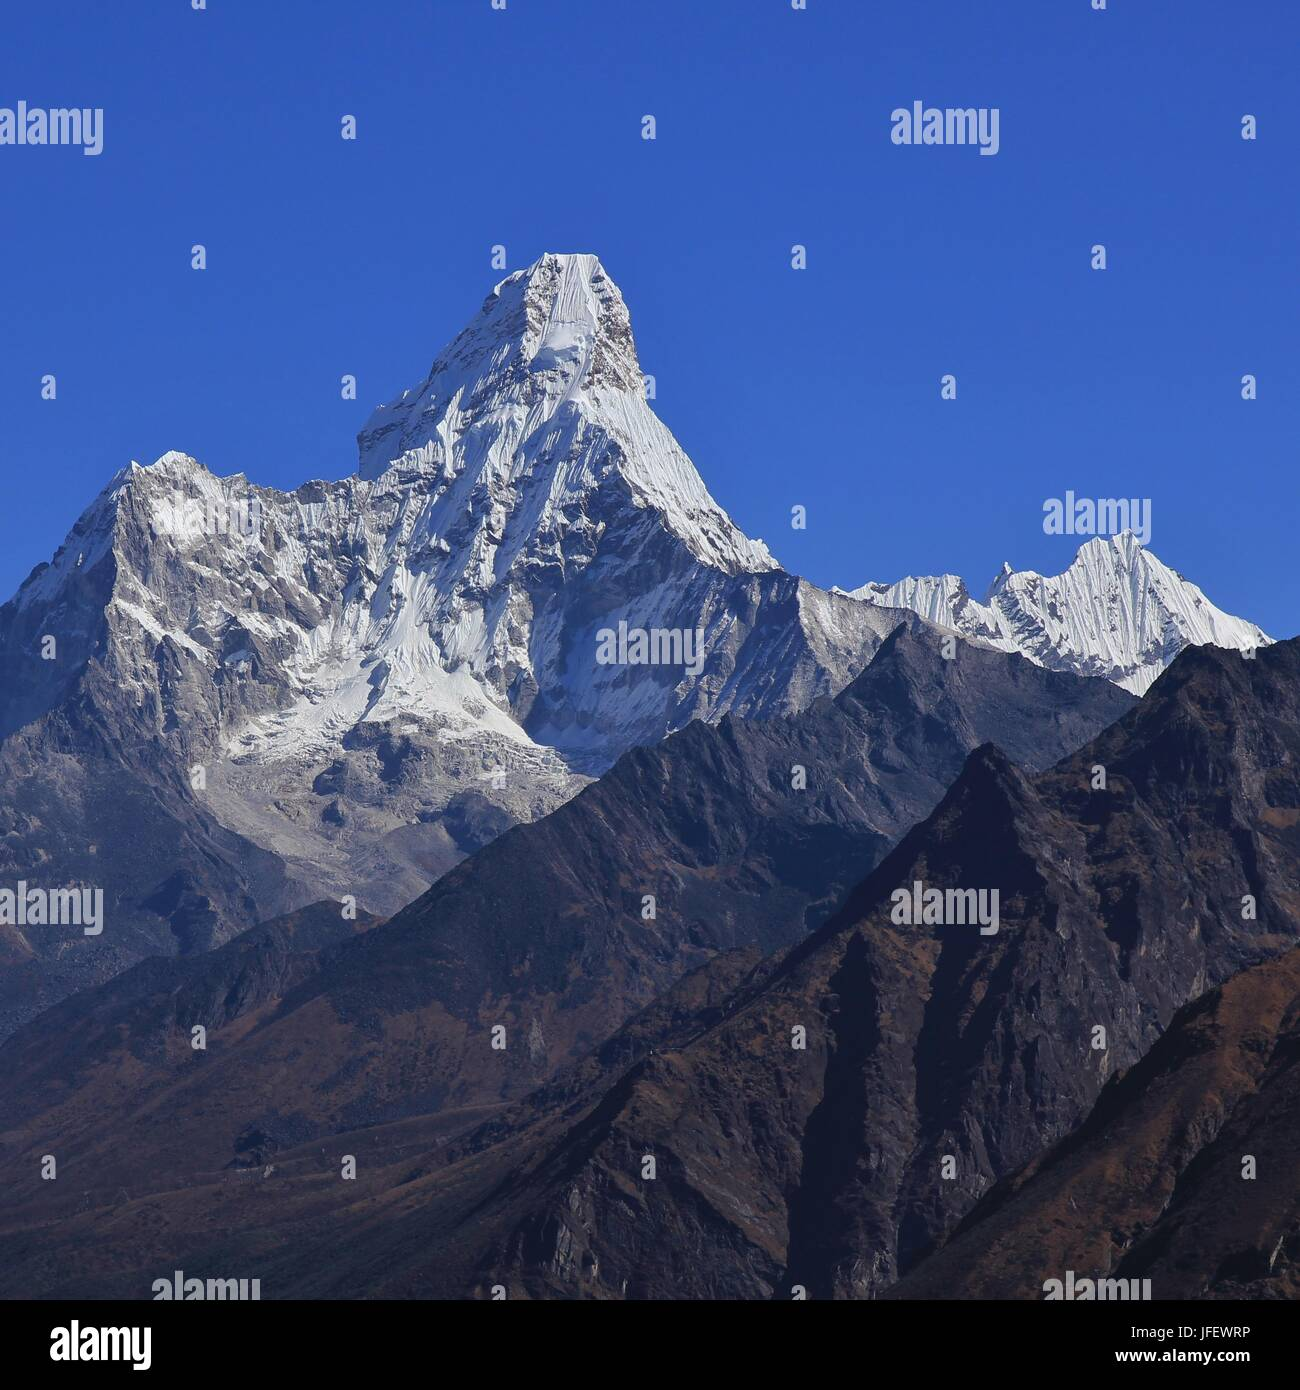 Mount Ama Dablam seen from Khumjung - Stock Image